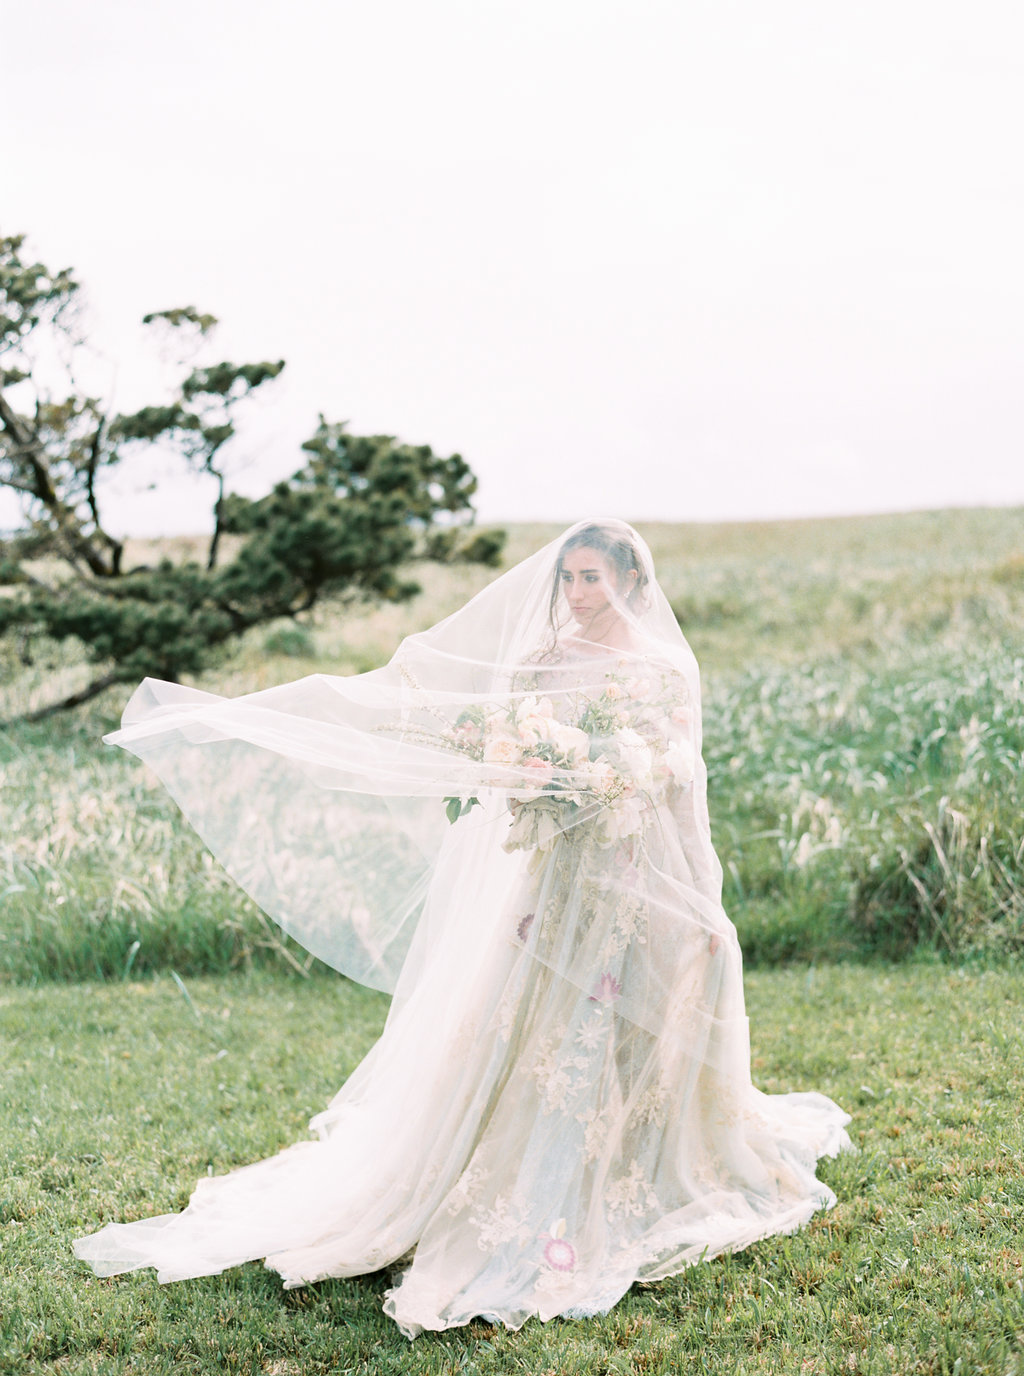 Coastal Oregon Inspiration with a Show-Stopping Wedding Gown - photo by Be Light Photography http://ruffledblog.com/coastal-oregon-inspiration-with-a-show-stopping-wedding-gown